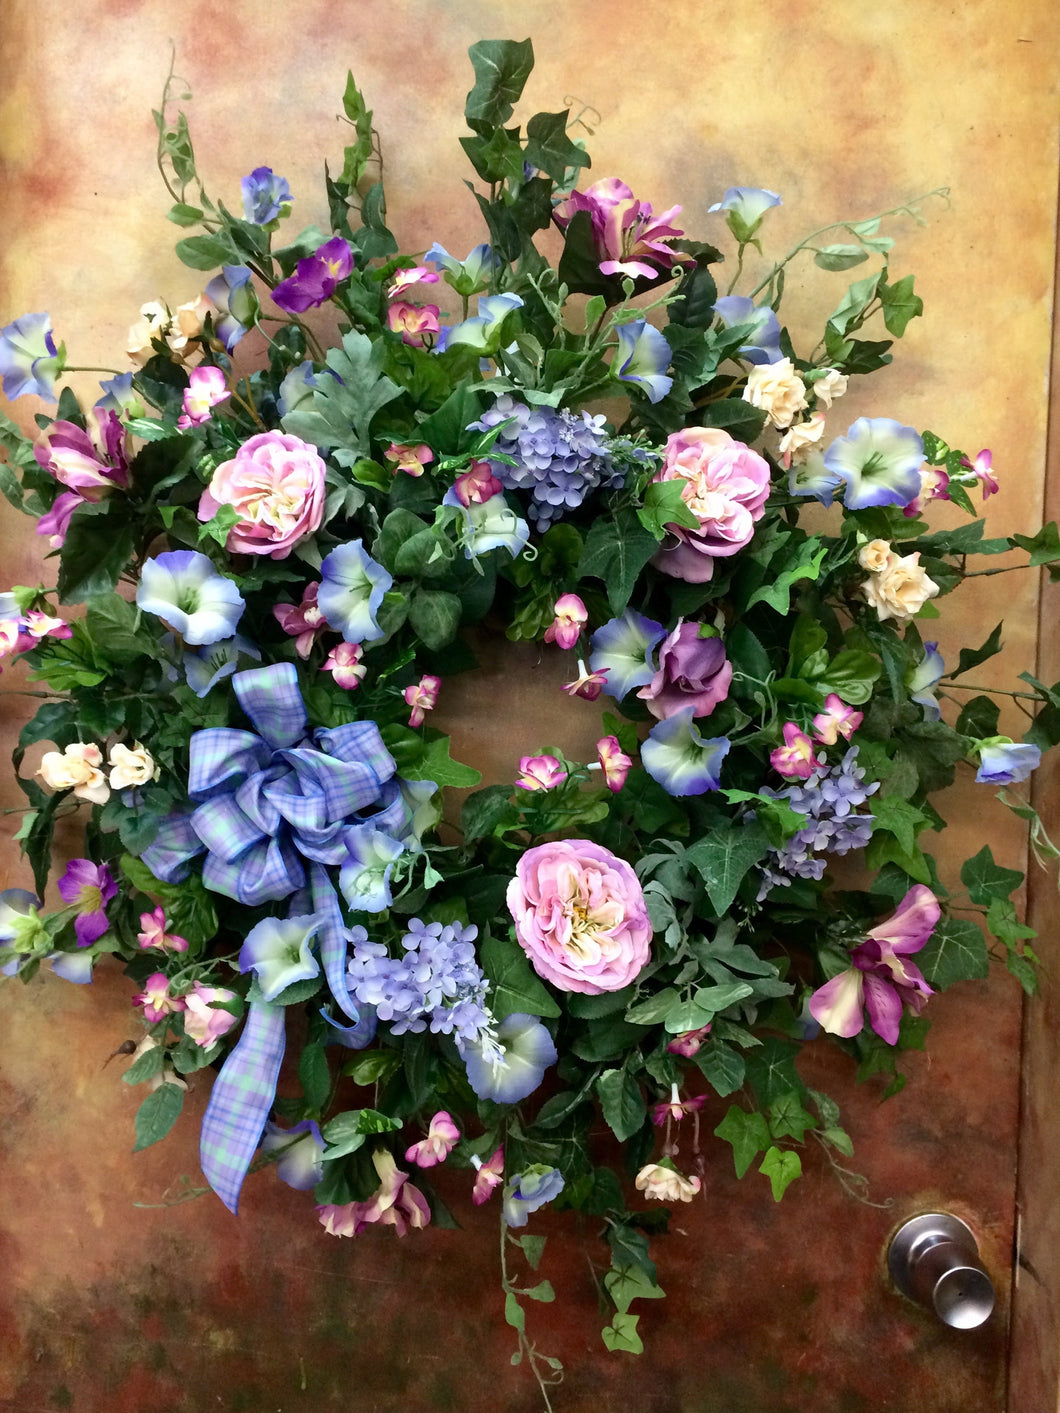 Gallery SW11 - April's Garden Wreath